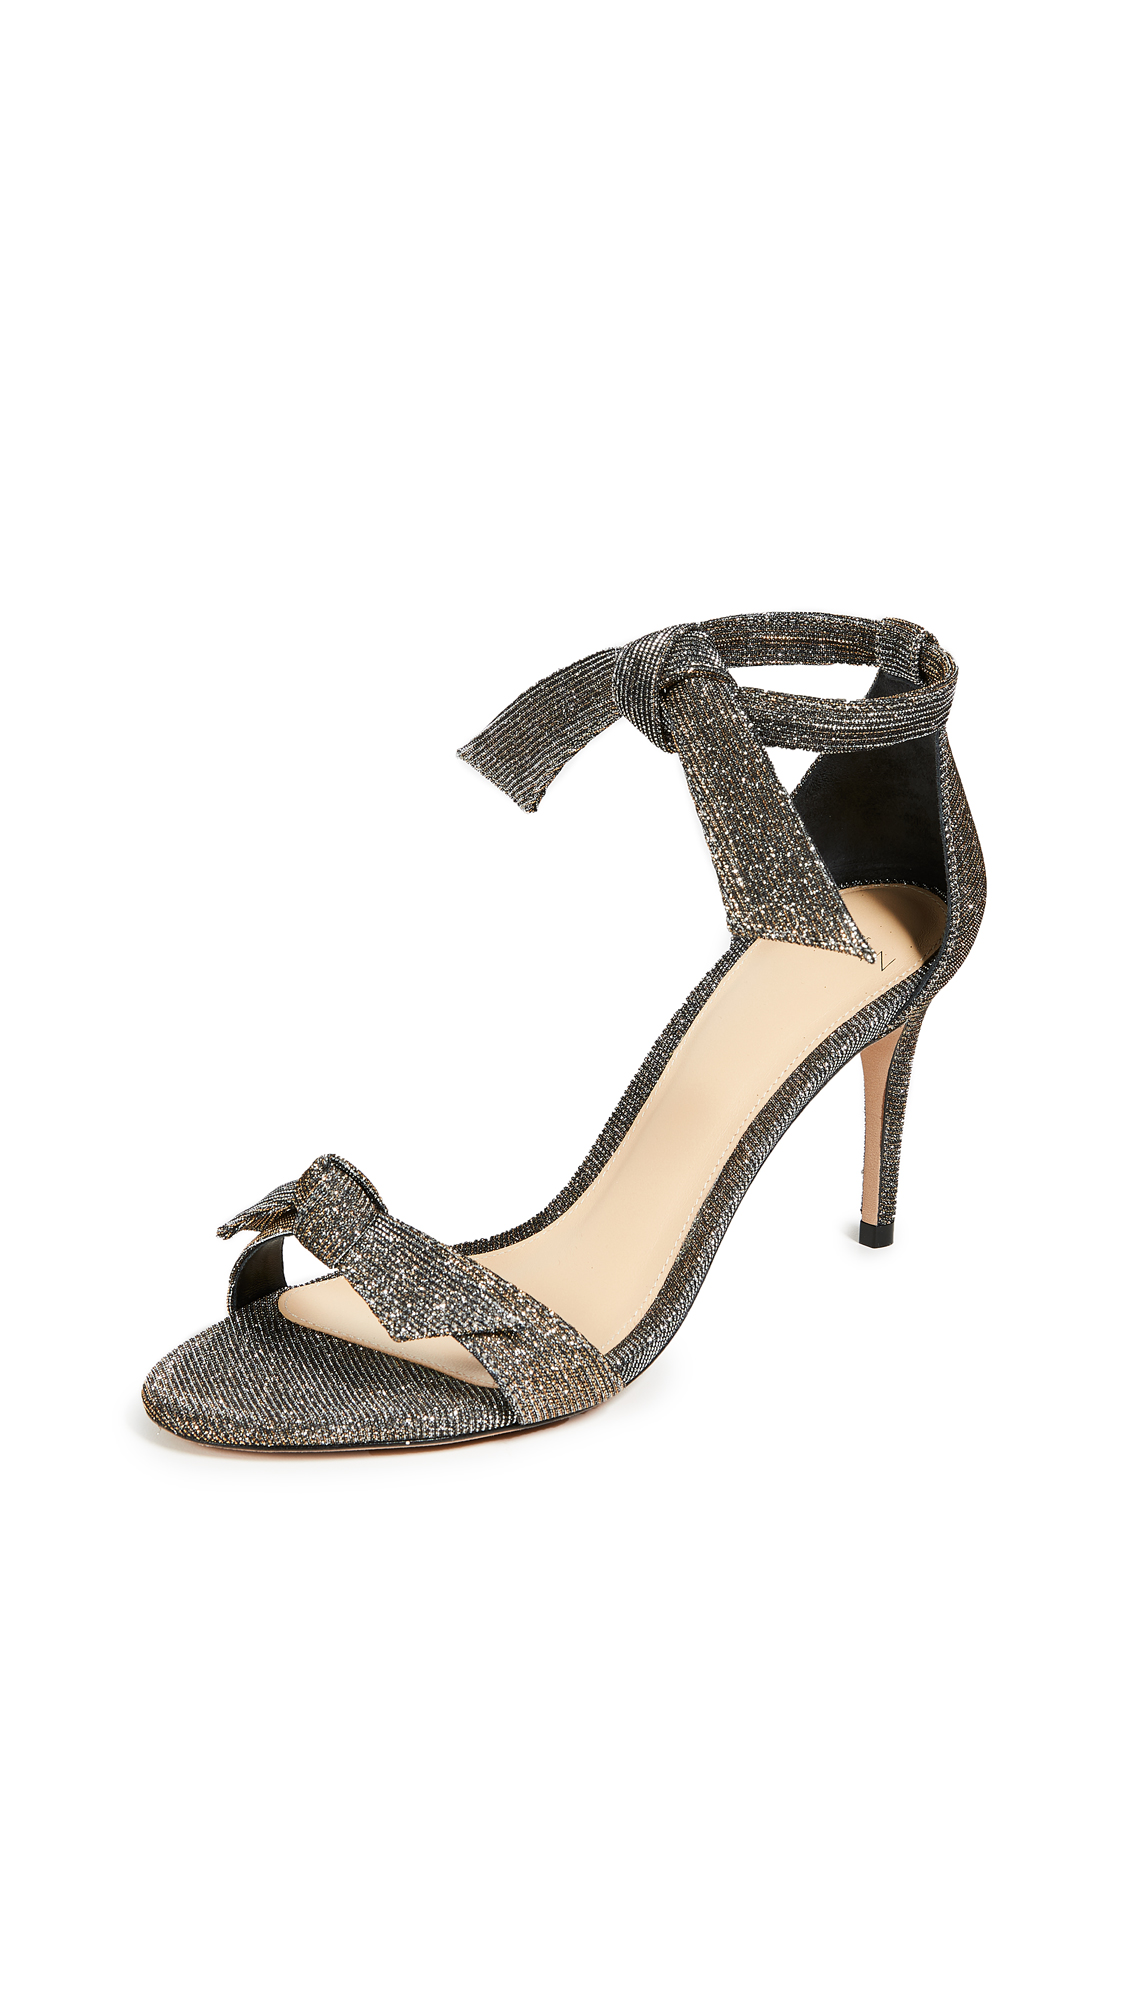 Alexandre Birman Clarita 75mm Sandals - Stellar